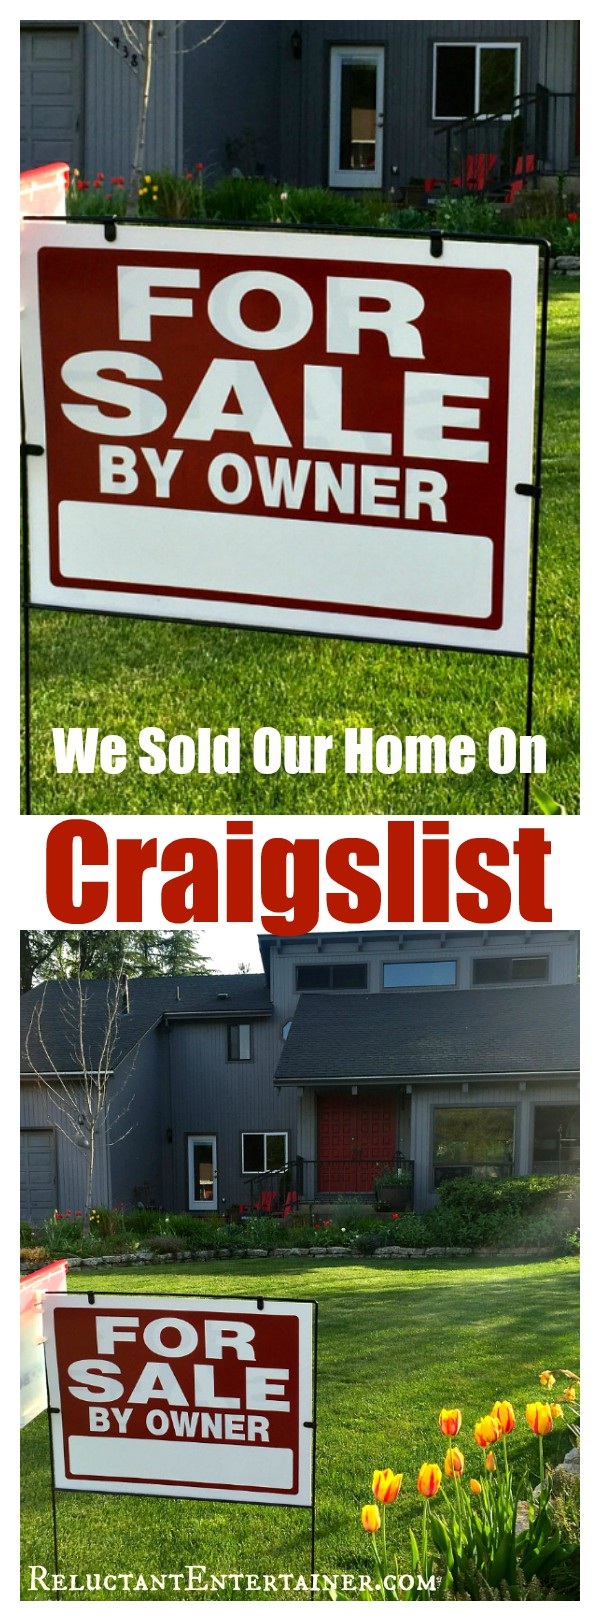 We Sold Our Home on Craigslist